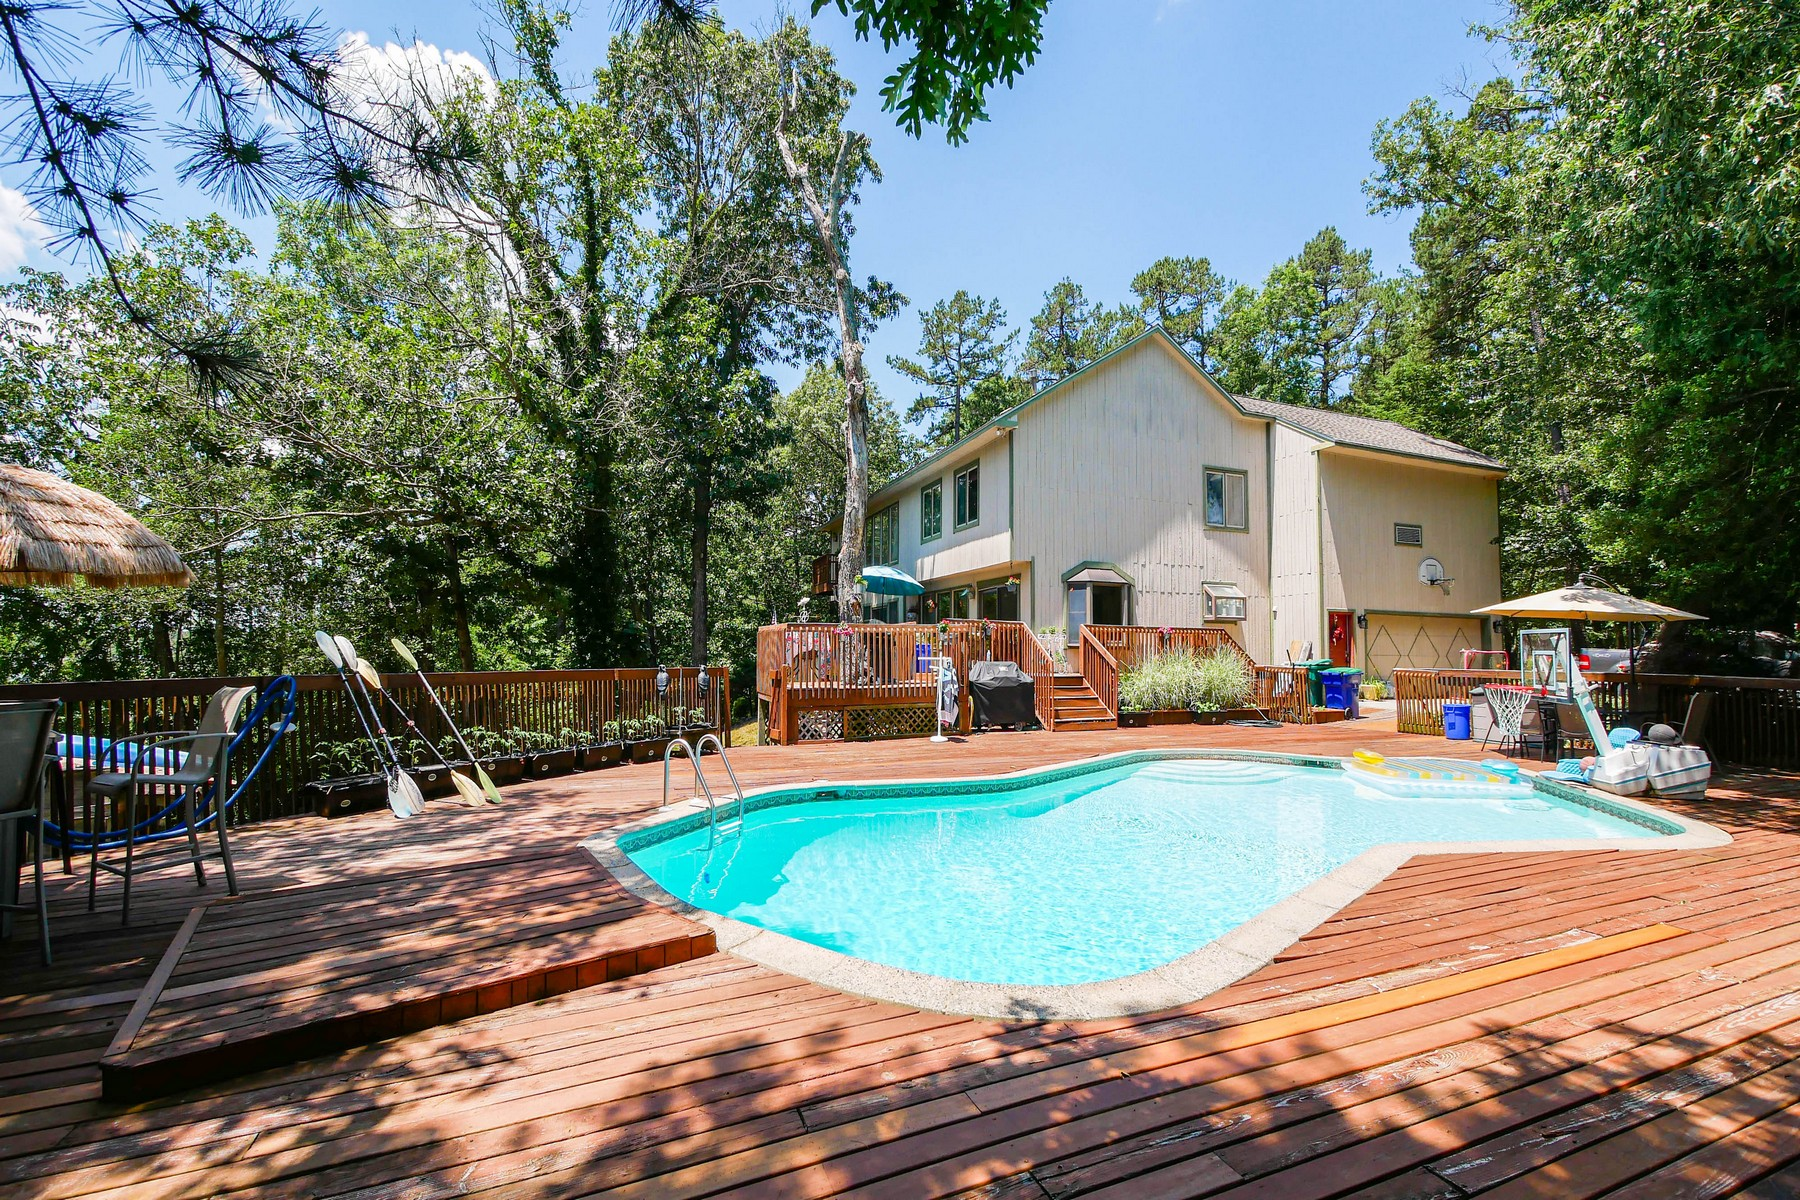 Additional photo for property listing at Riverfront Home 556 Gravelly Run Rd, Mays Landing, Nova Jersey 08330 Estados Unidos